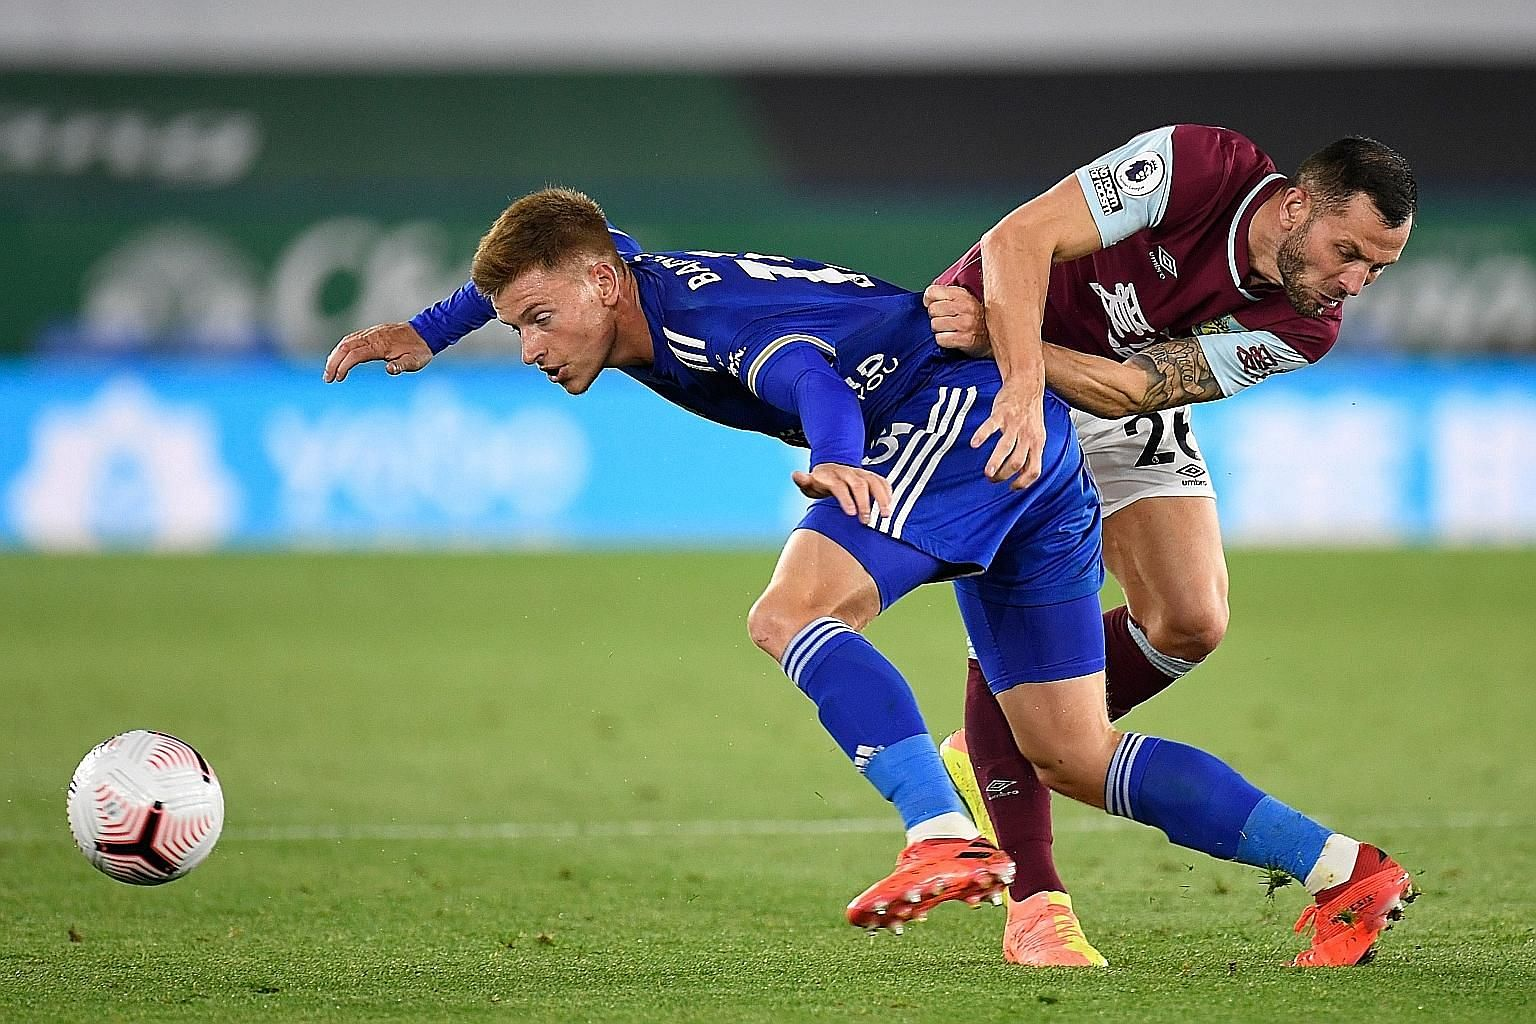 Leicester City midfielder Harvey Barnes gets into a tussle with Burnley's Phil Bardsley as the Foxes claim a 4-2 win at home.